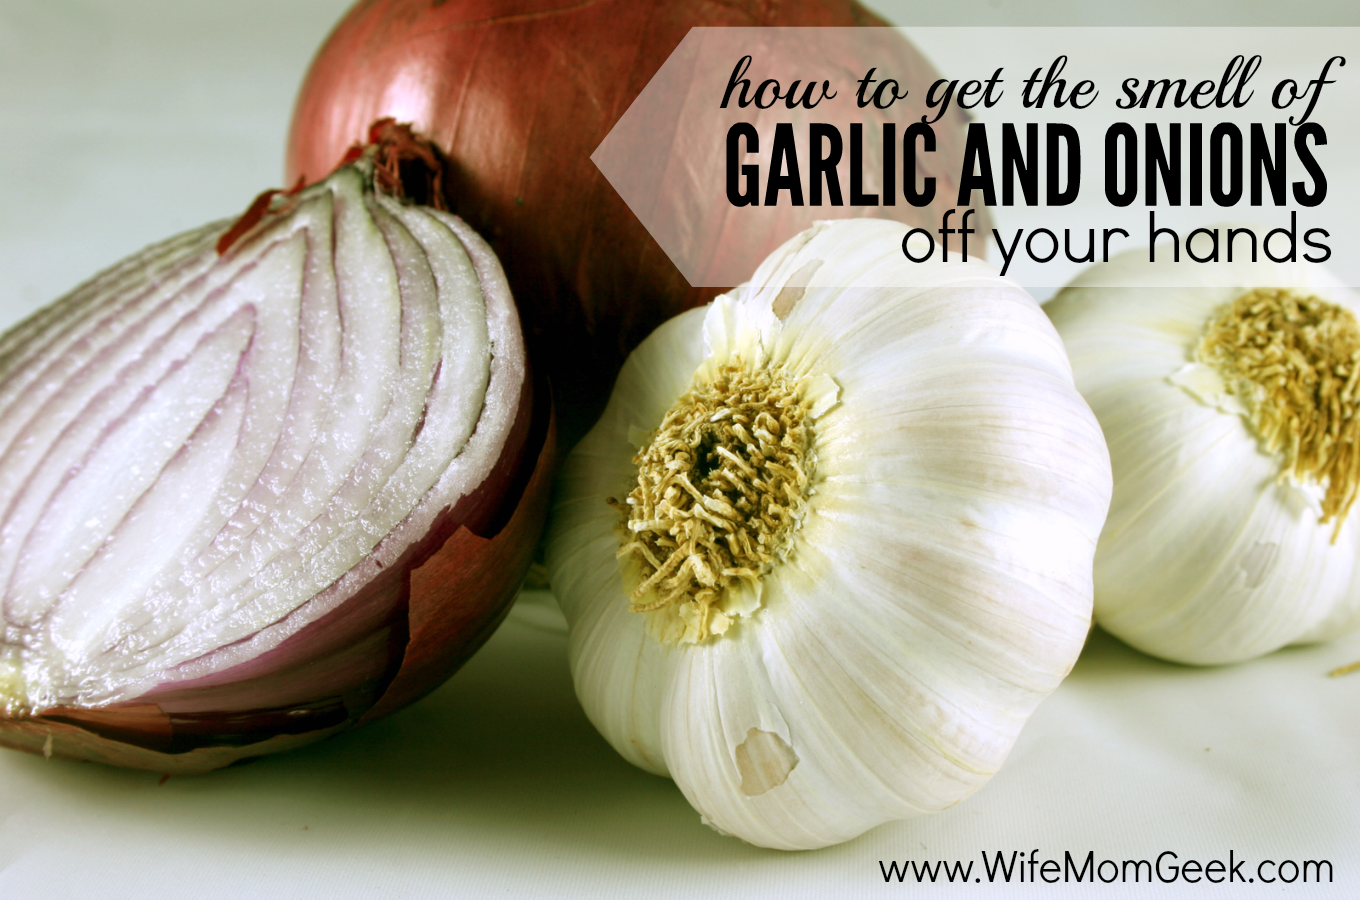 603af2cd2ec9d1f660b058869537f01e - How To Get Rid Of Garlic Odor In House